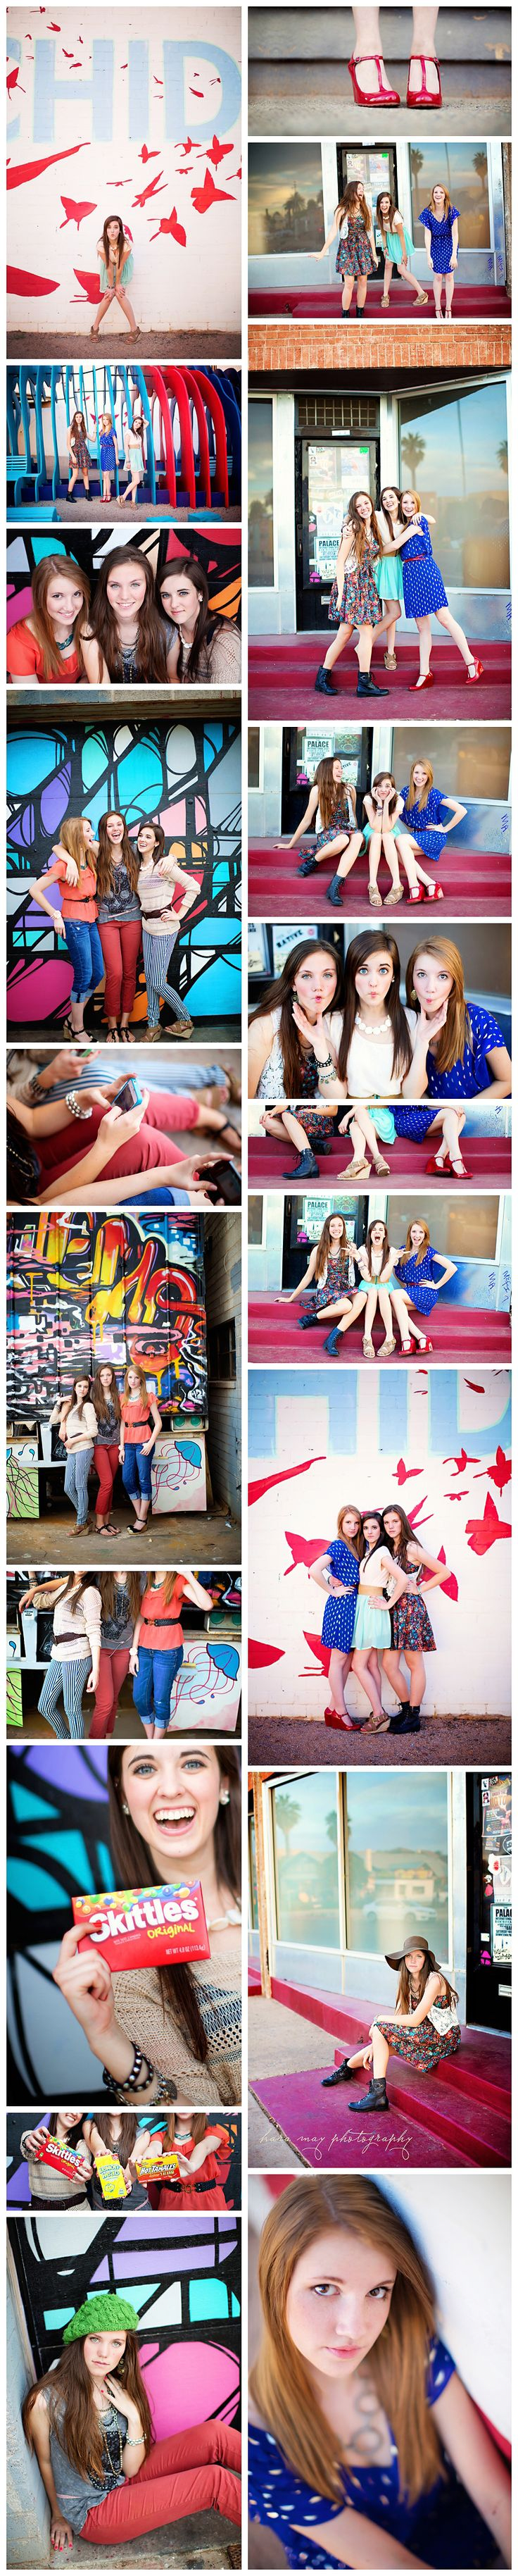 {Urban Session - 'Girls Just Wanna Have Fun'} — Kara May Photography